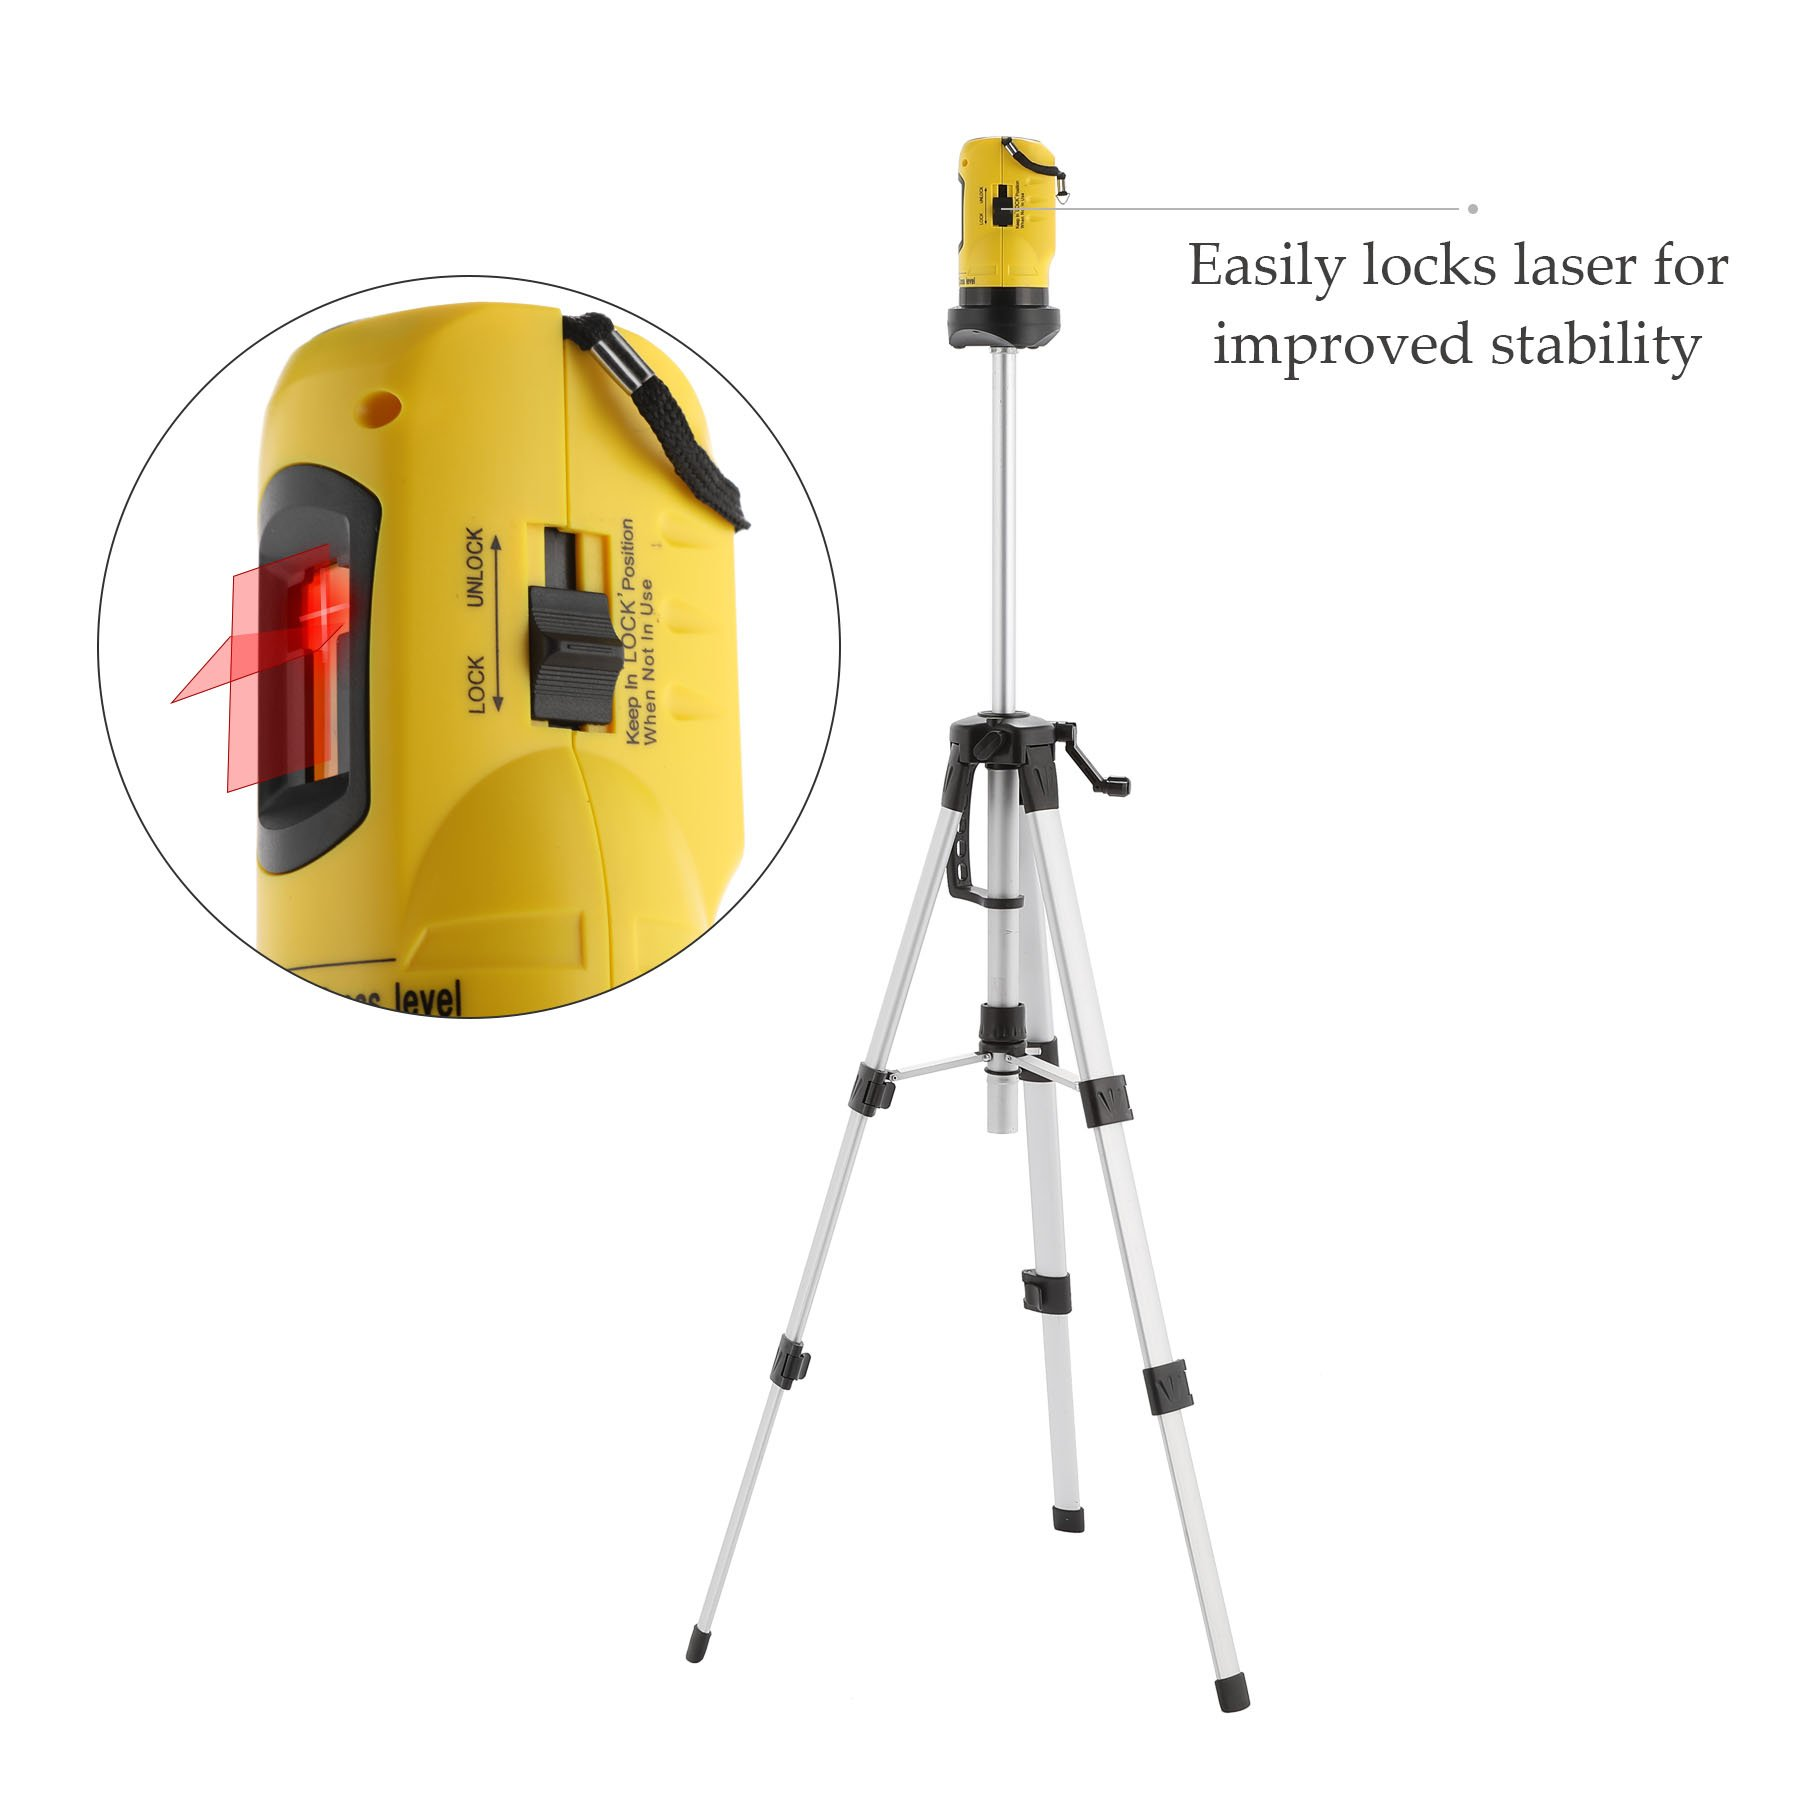 CO-Z Laser Level with Tripod, Auto Leveling Kit Combo with Horizontal/Vertical/ Cross-Line, Dual-module Self-Leveling Tool Set for Builders & Contractors by CO-Z (Image #4)